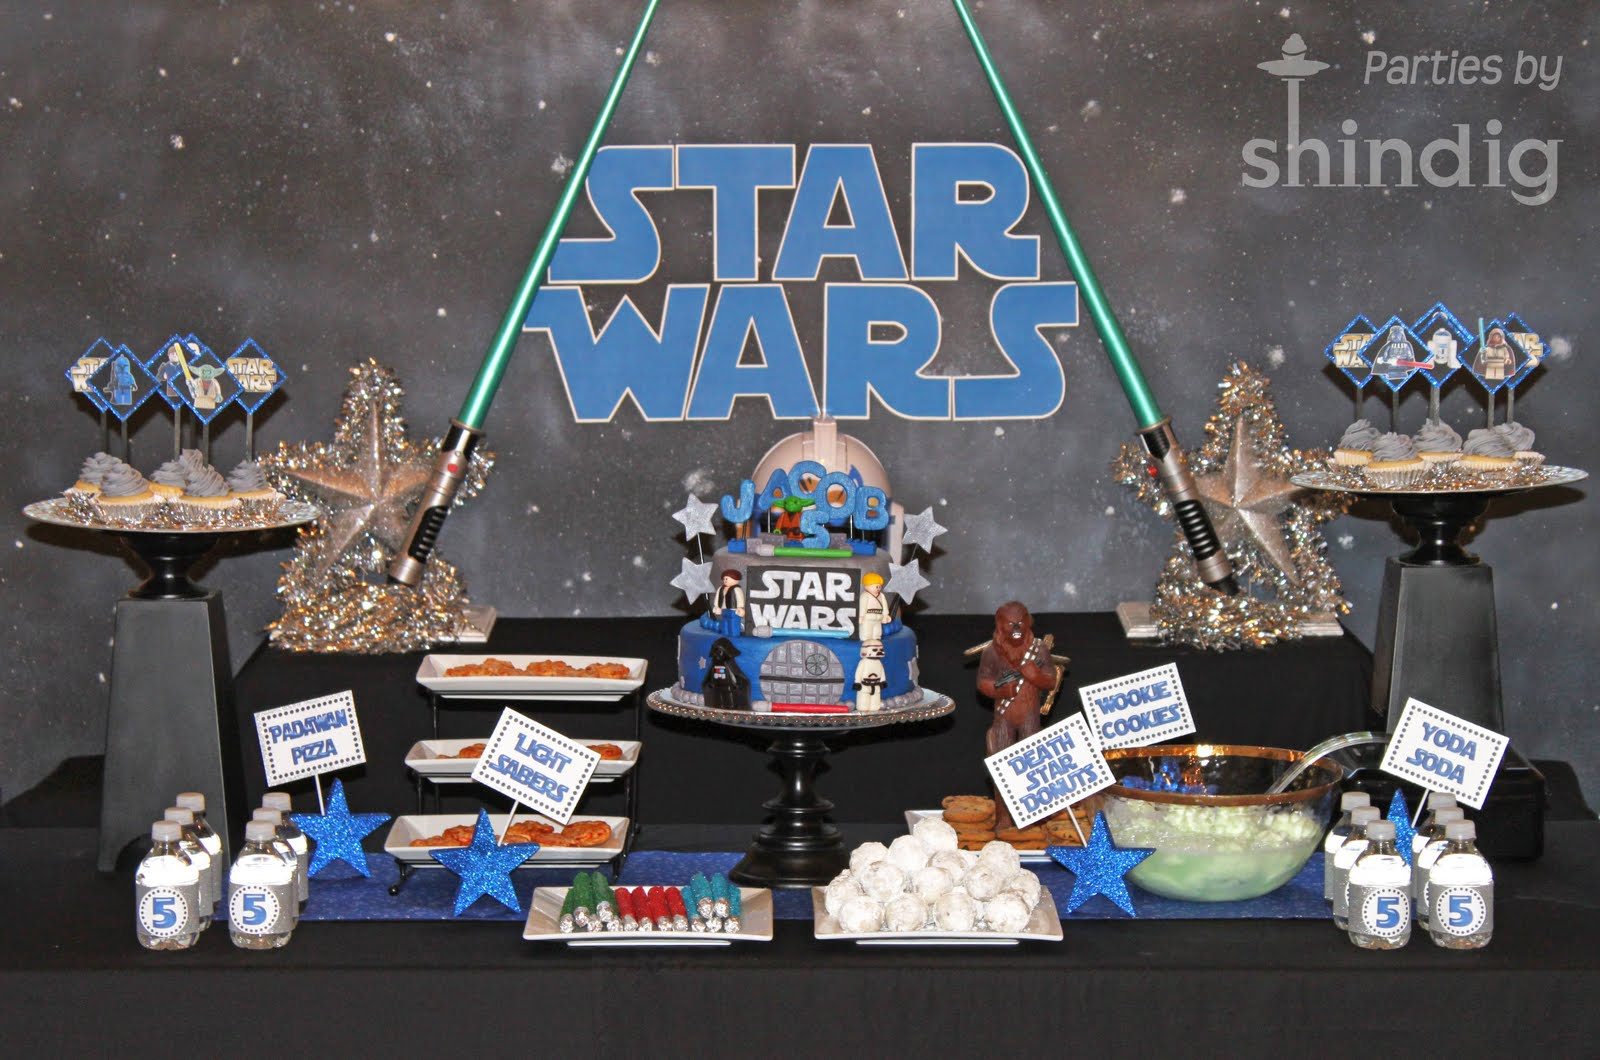 Star Wars: Party Details